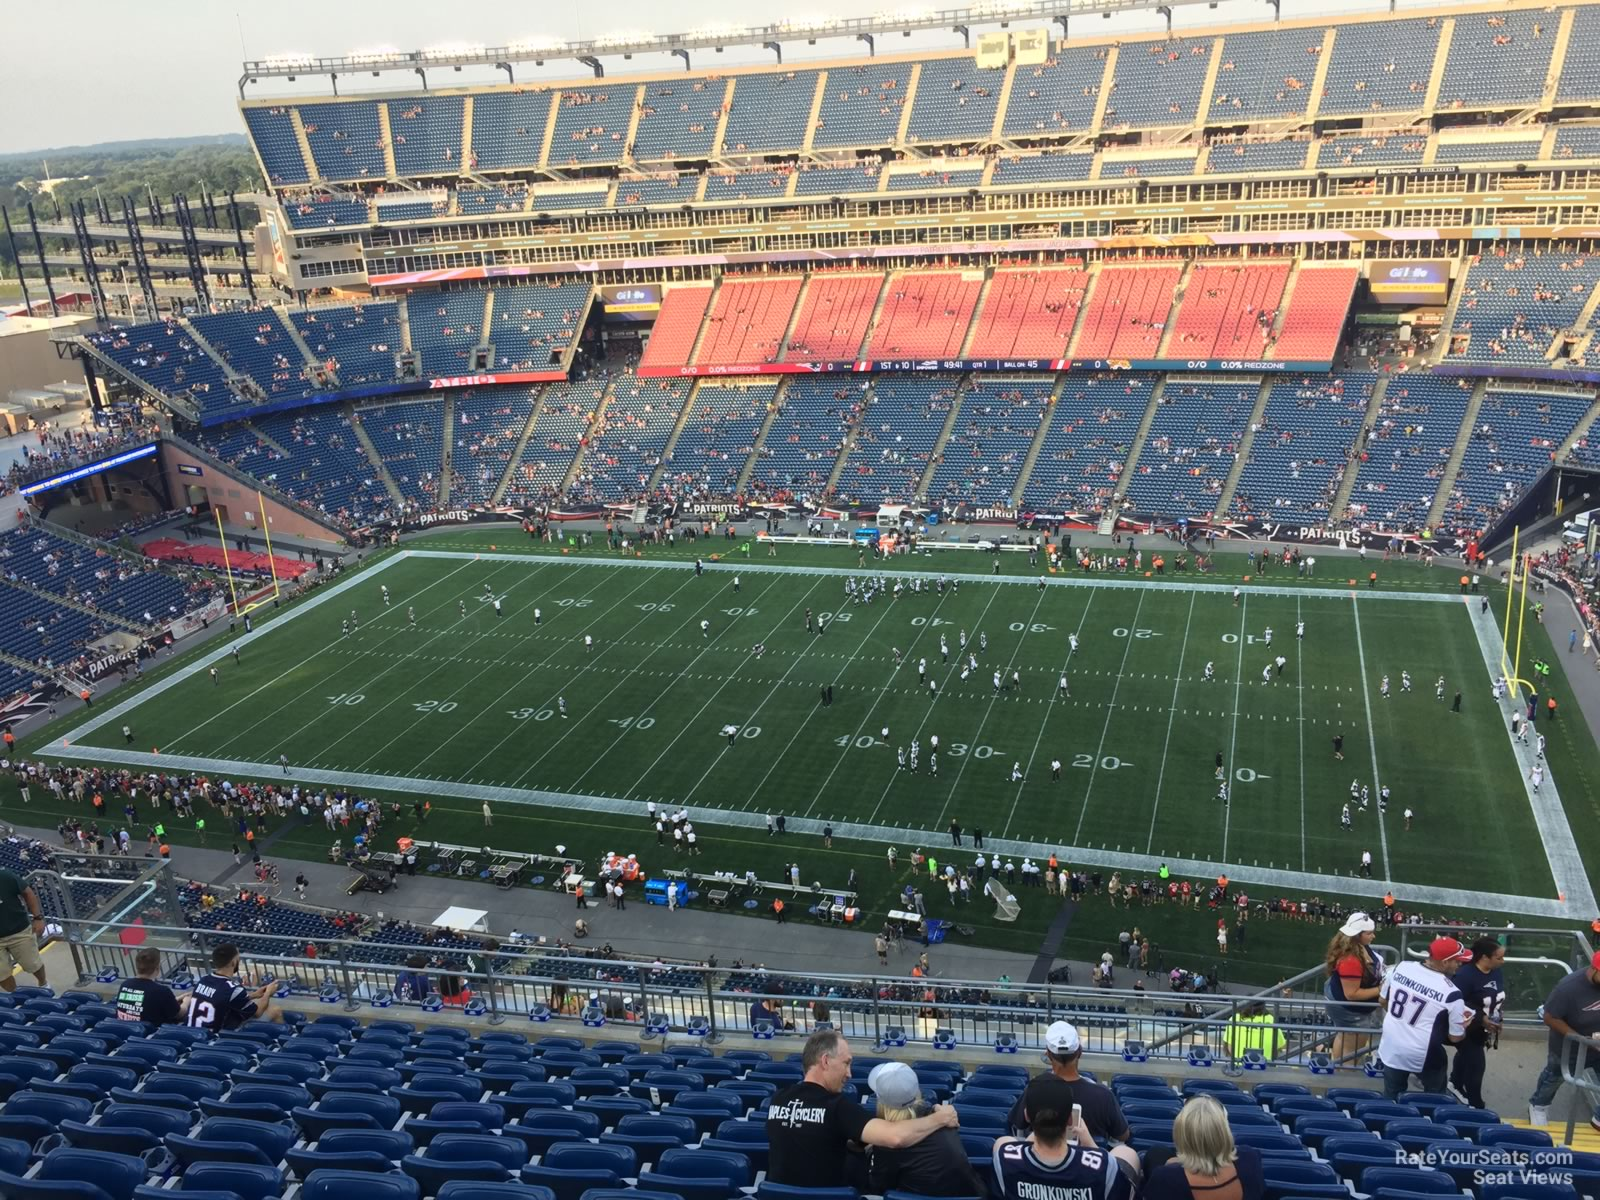 New England Patriots Seat View for Gillette Stadium Section 329, Row 19